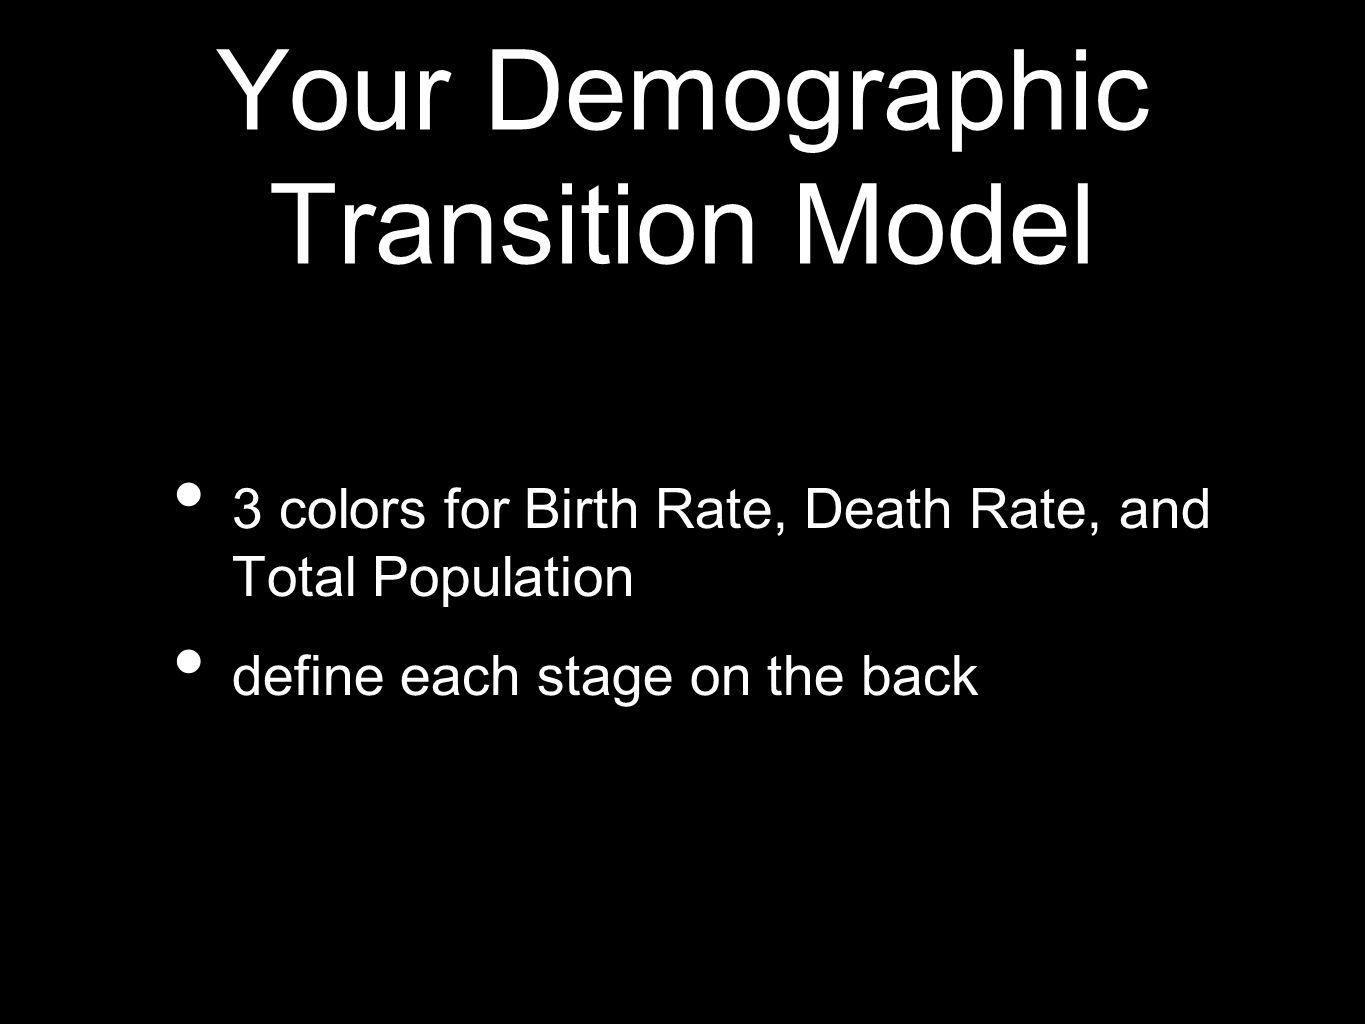 Your Demographic Transition Model